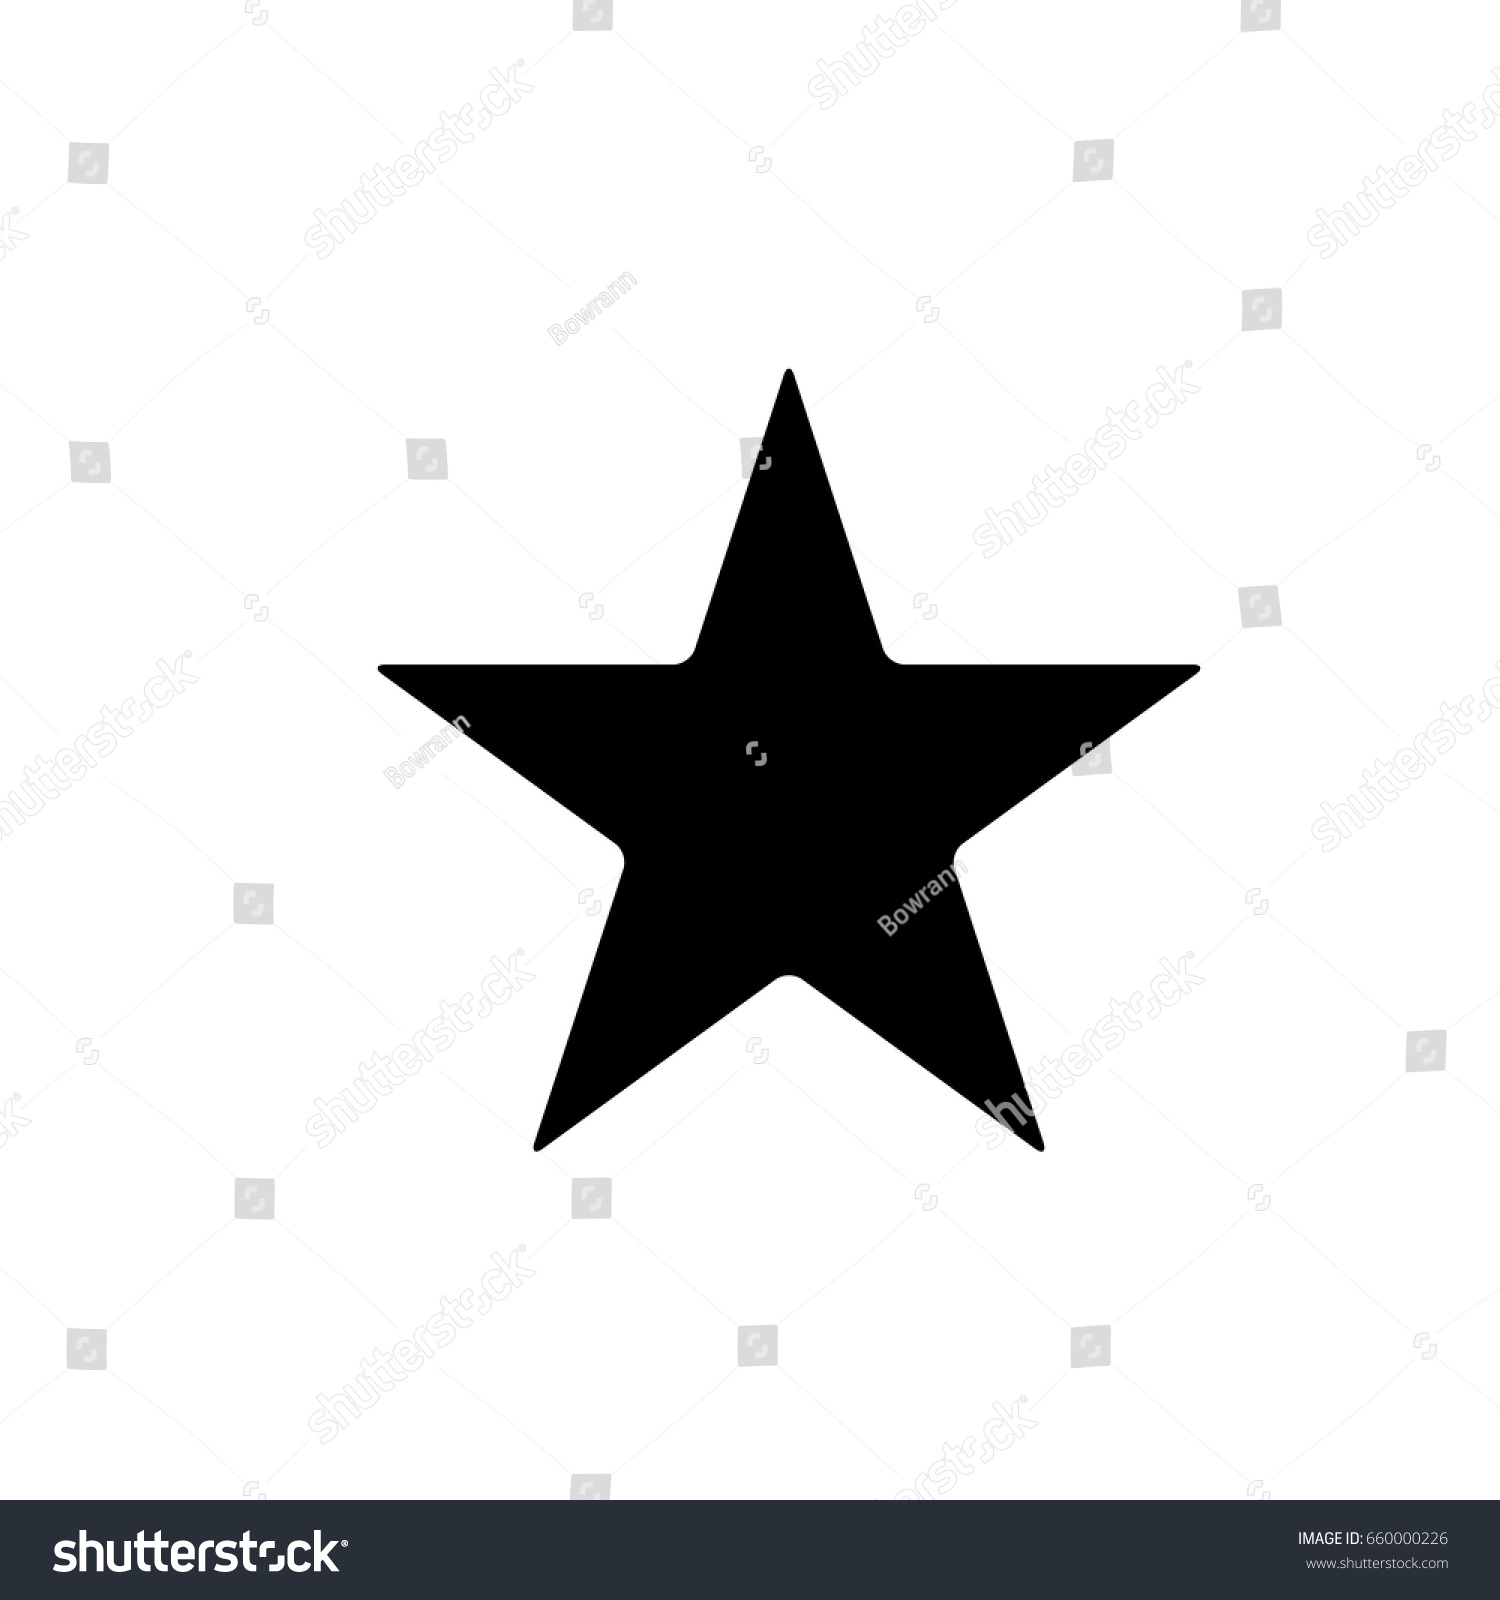 star - Vector icon